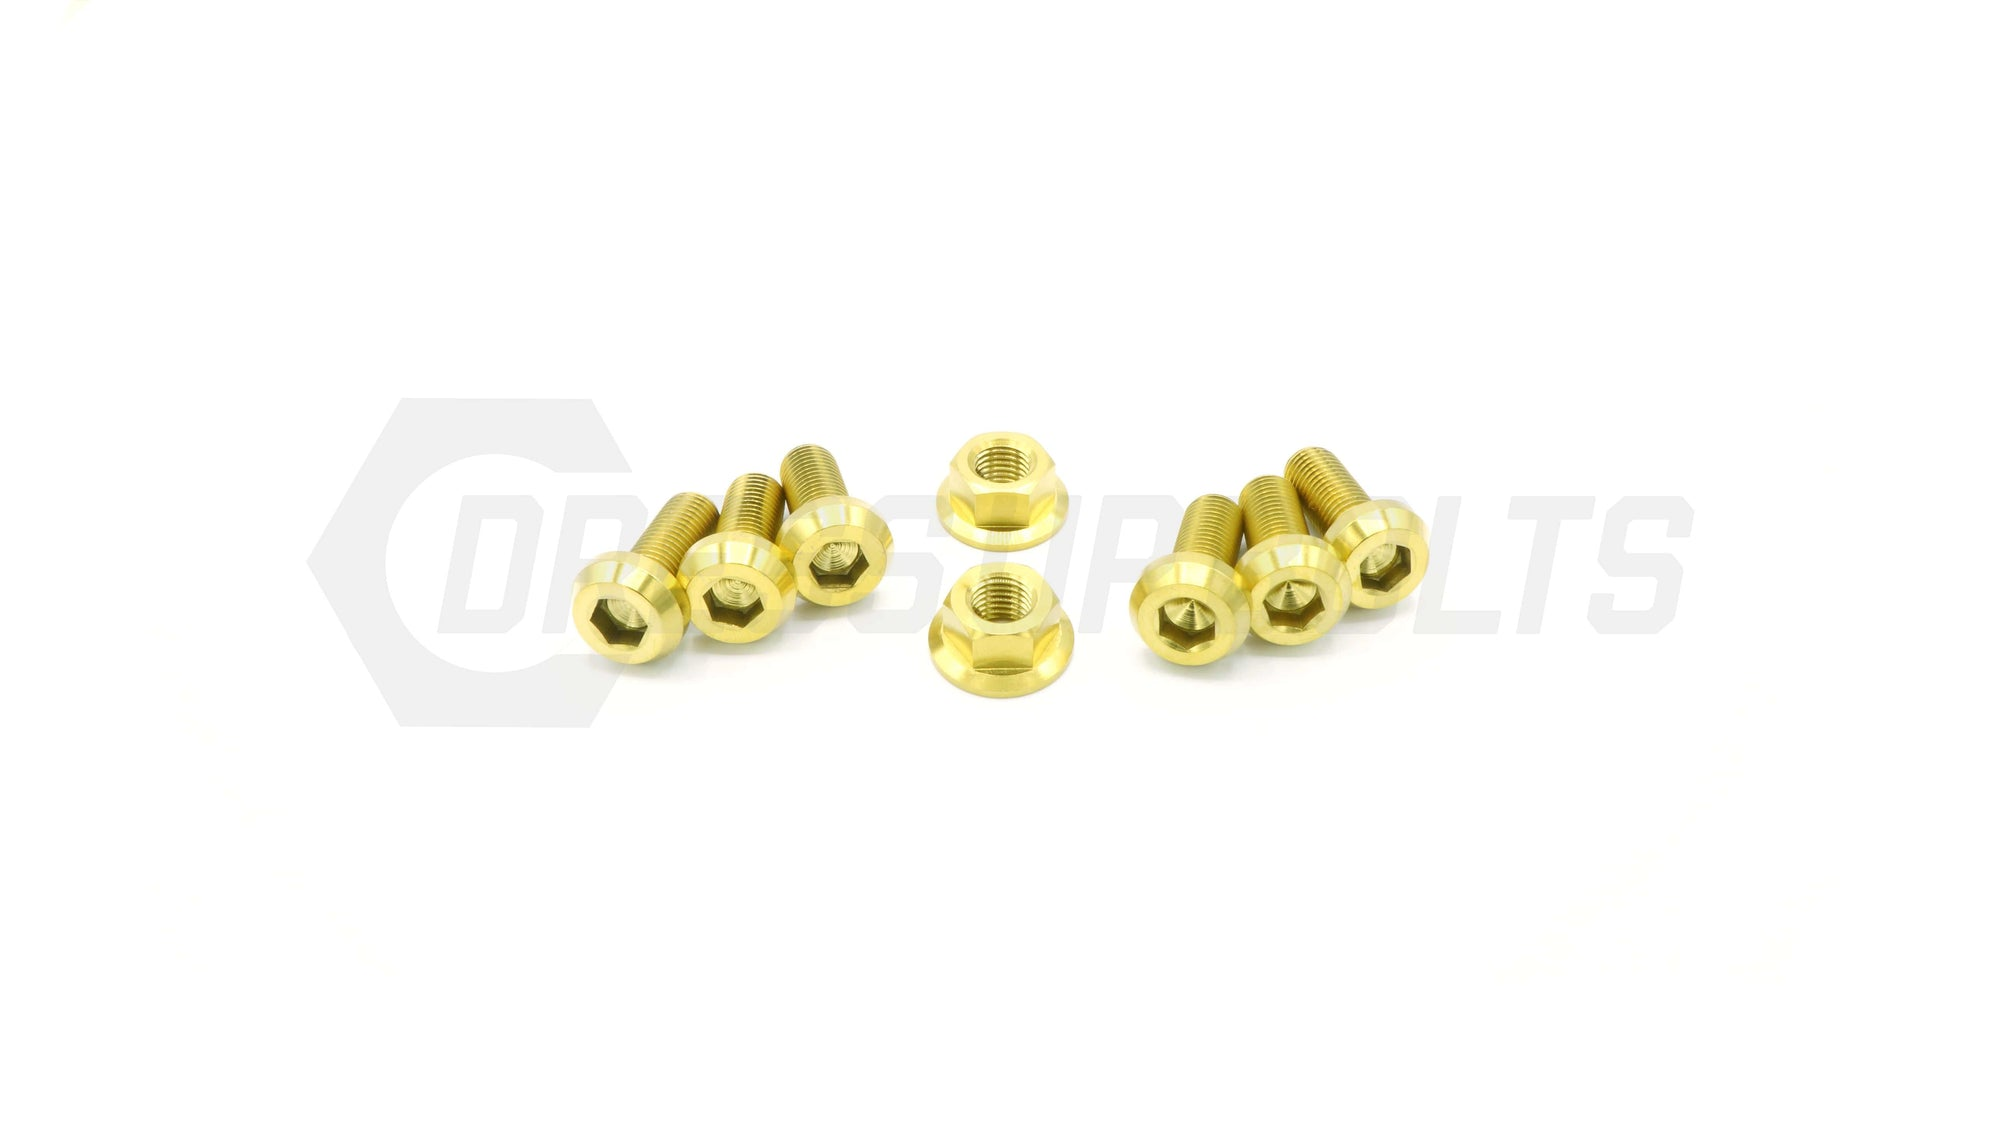 Dress Up Bolts Titanium Hardware Strut Tower Bar Kit - Nissan 350Z - DressUpBolts.com